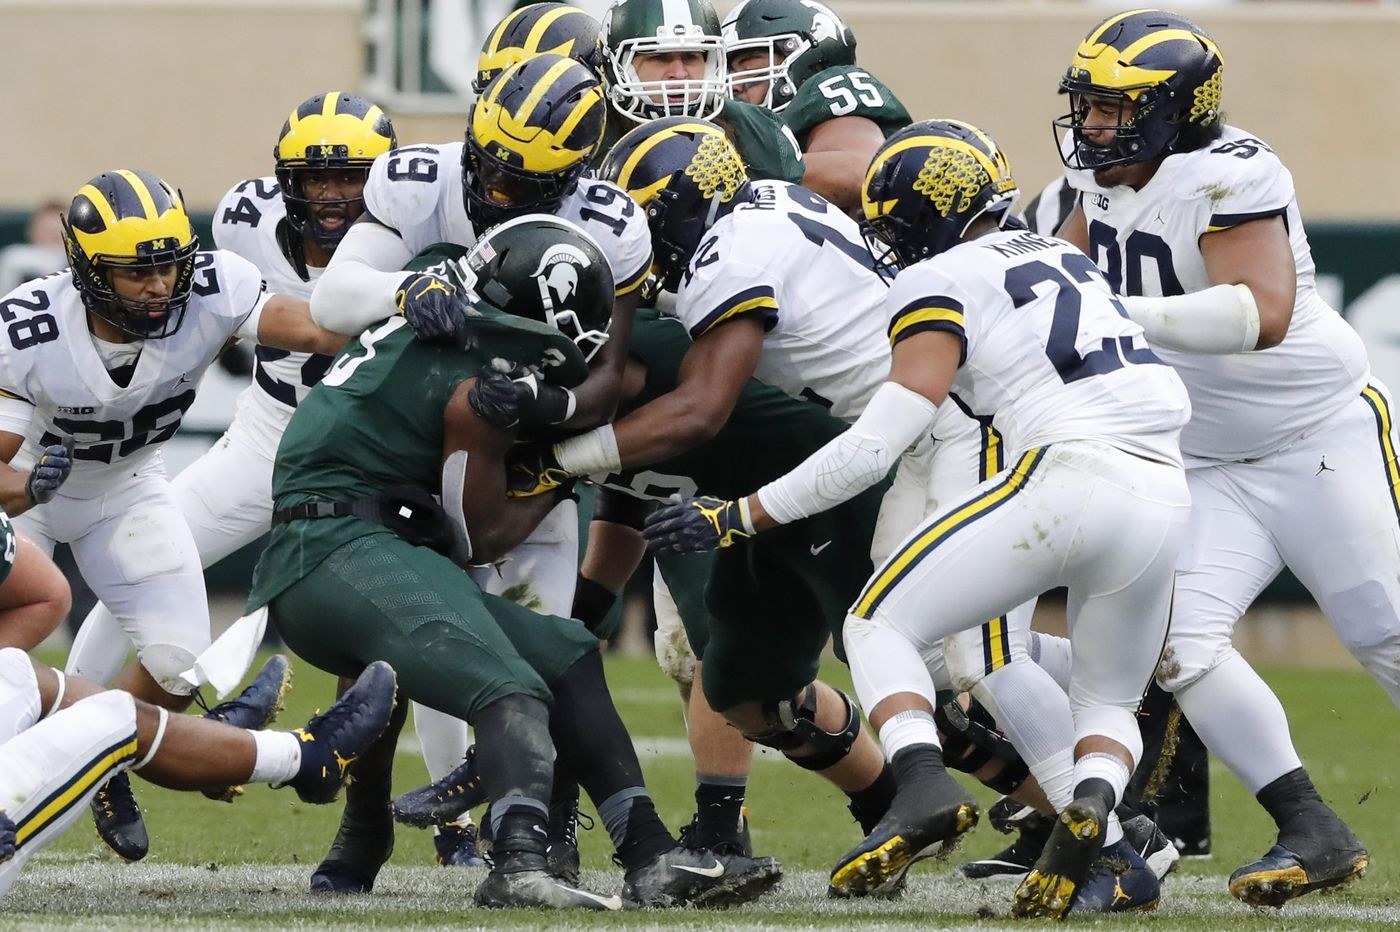 Penn State's third-down issues will be magnified by Michigan's dominant defense